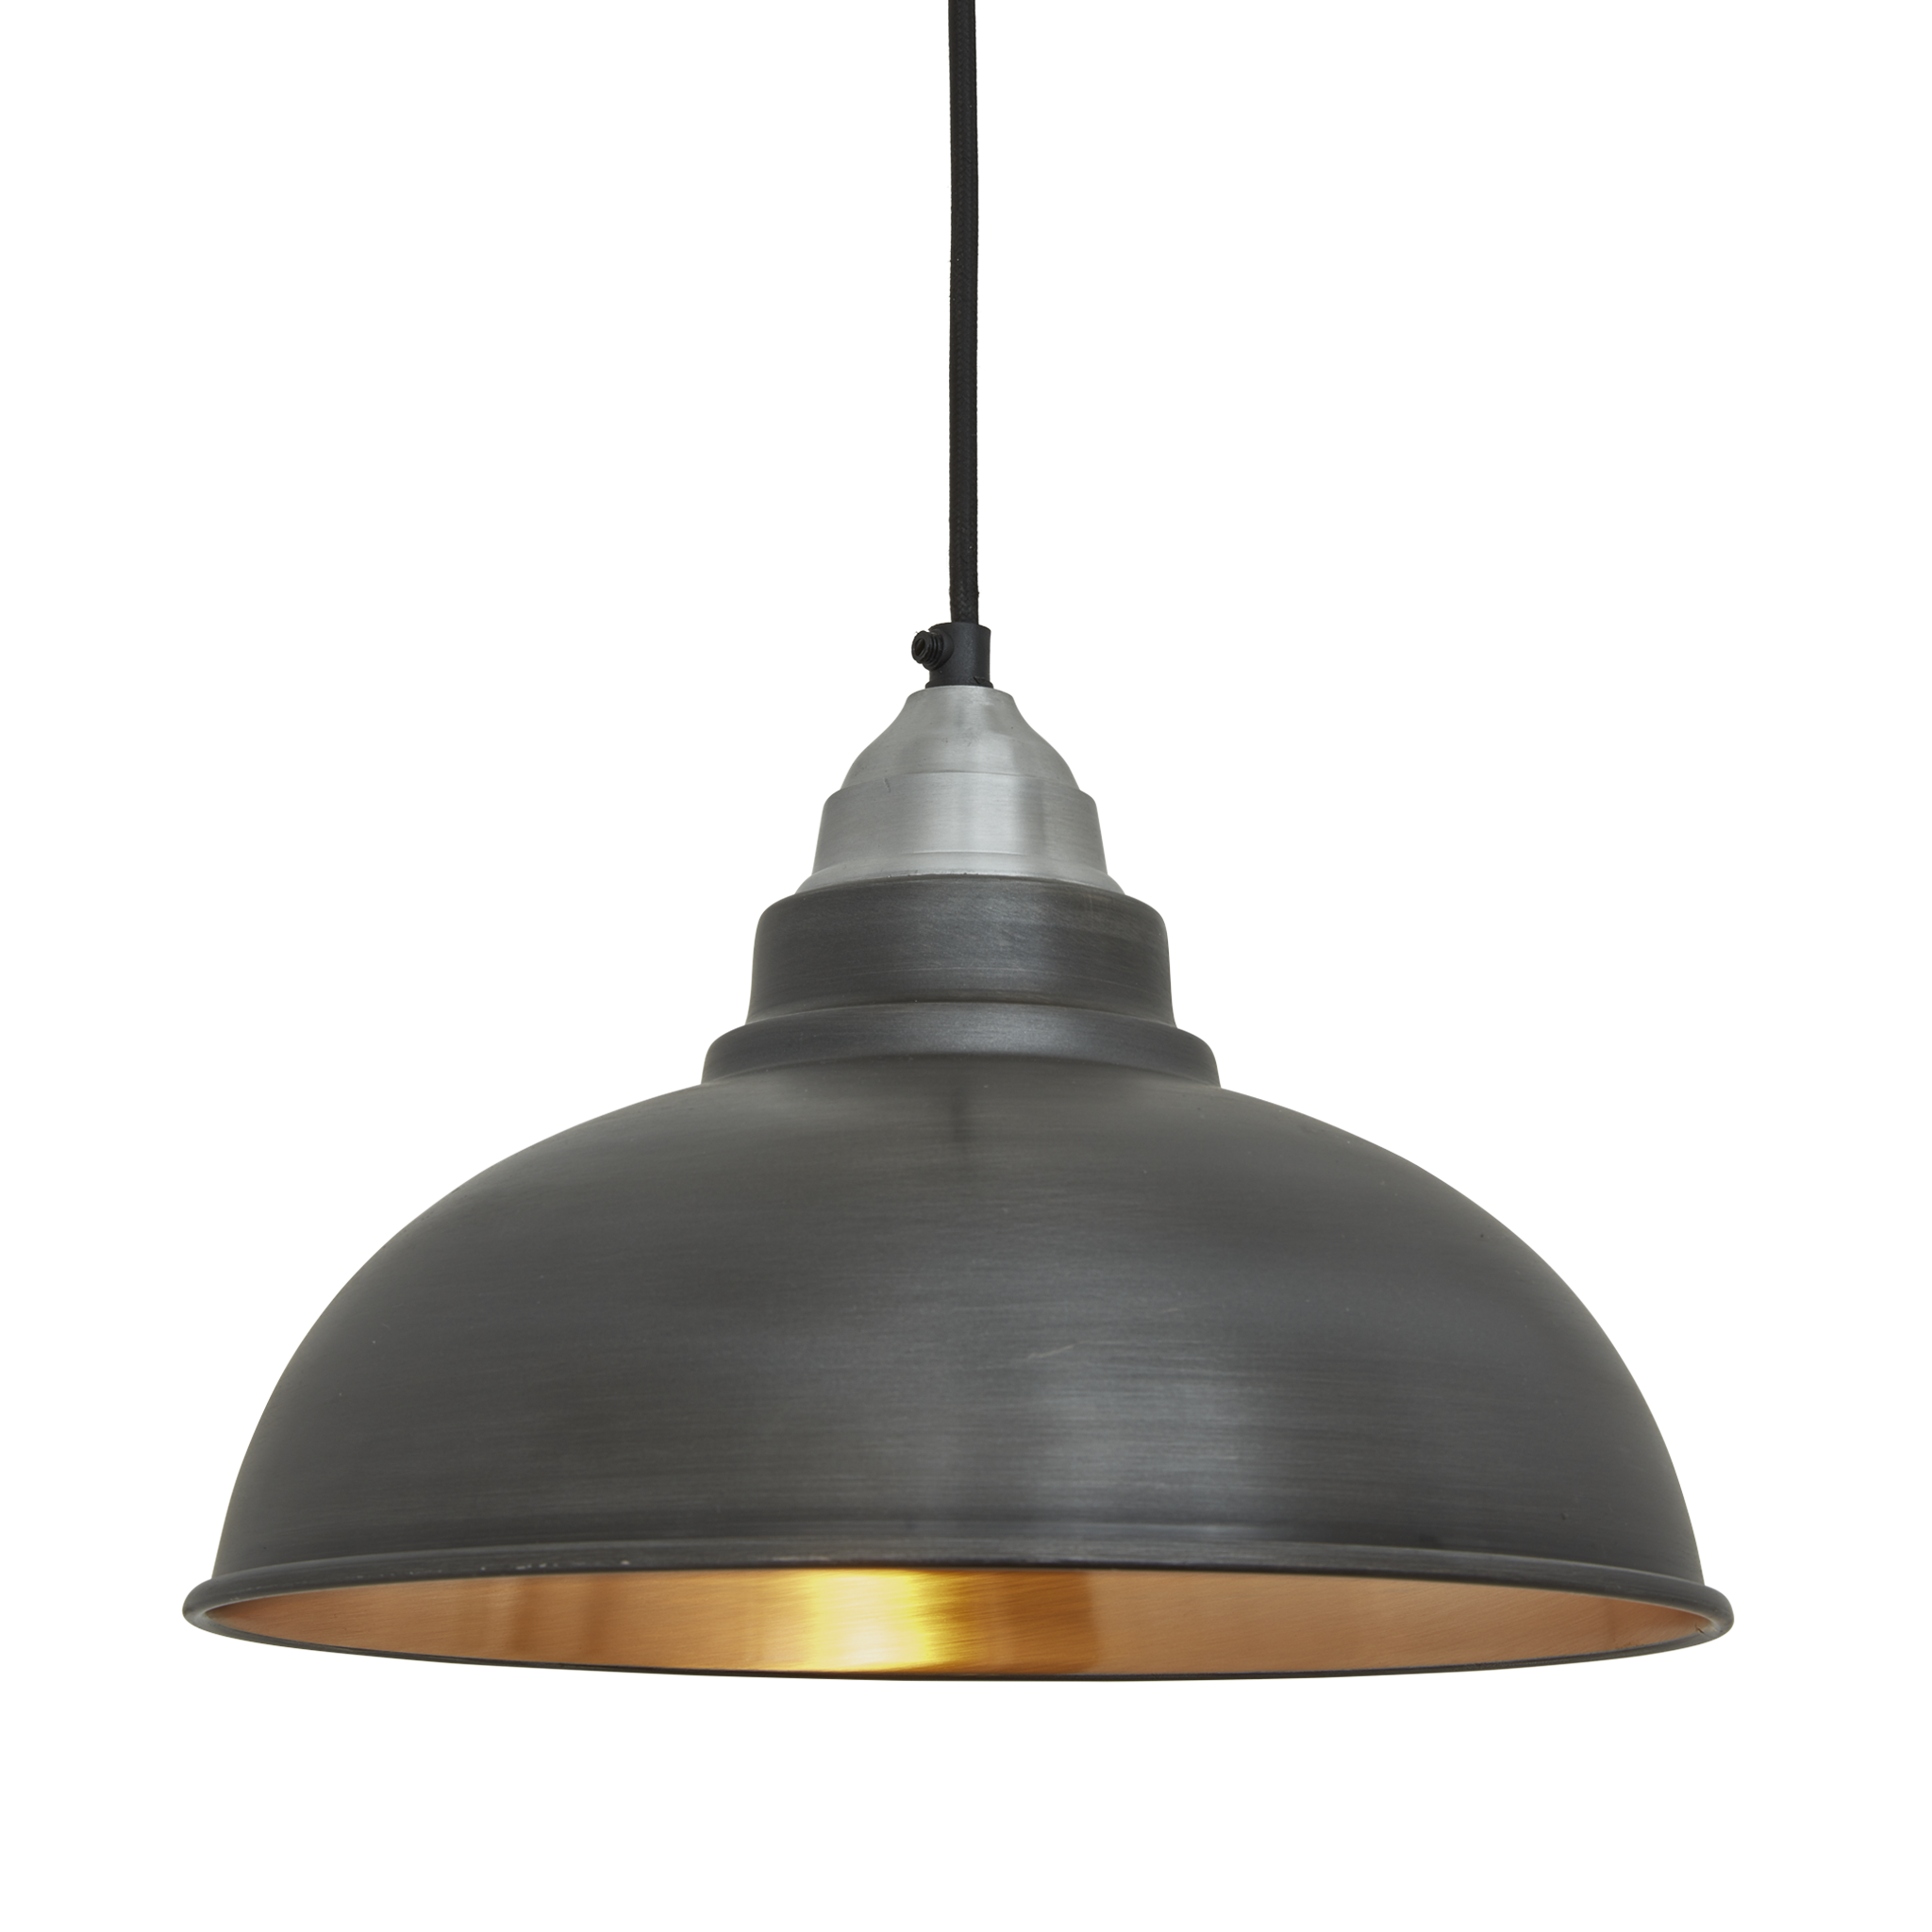 copper pendant light kitchen price pfister faucet parts old factory 12 inch pewter and lámparas